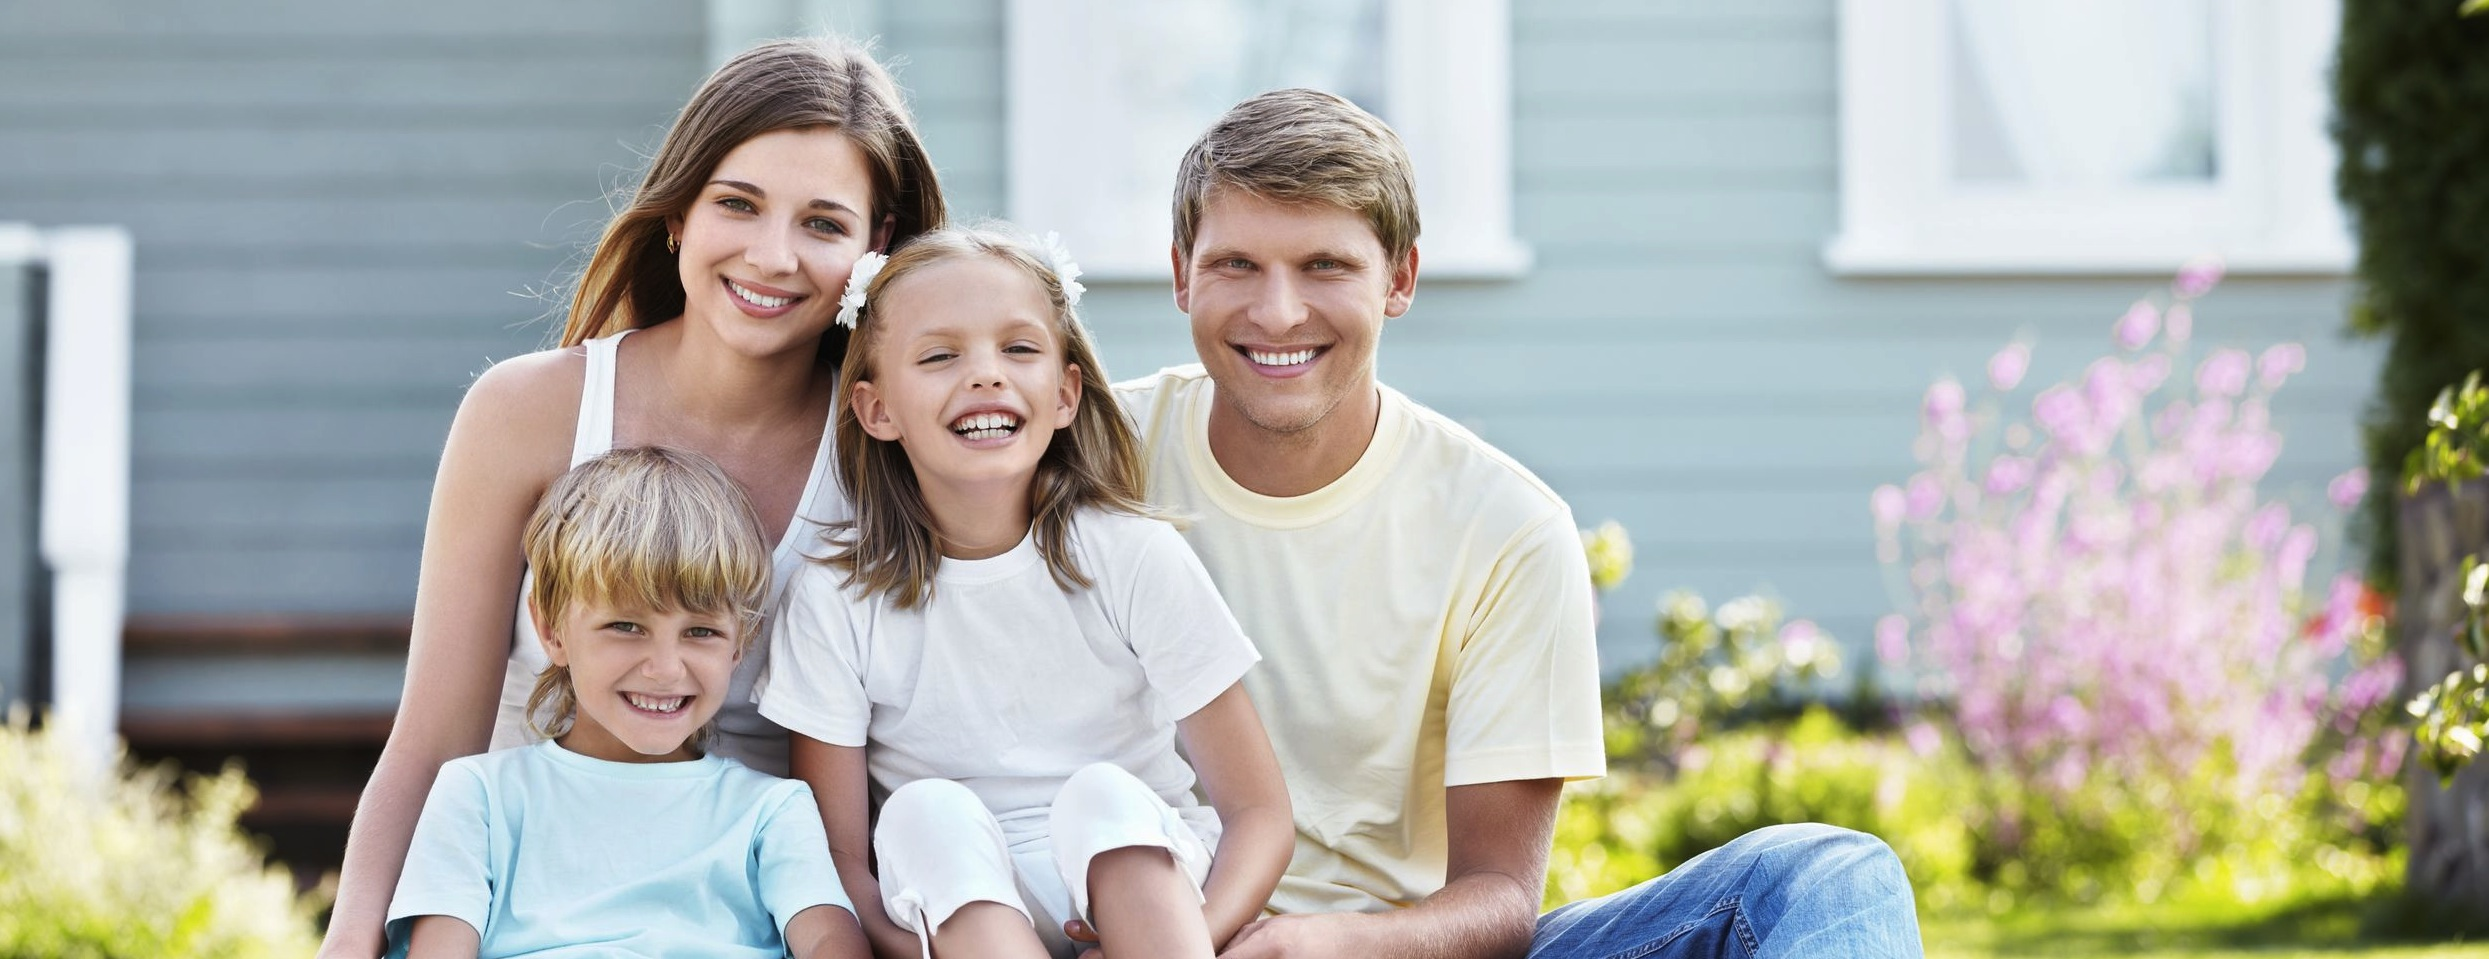 Keep your family safe with our affordable security systems